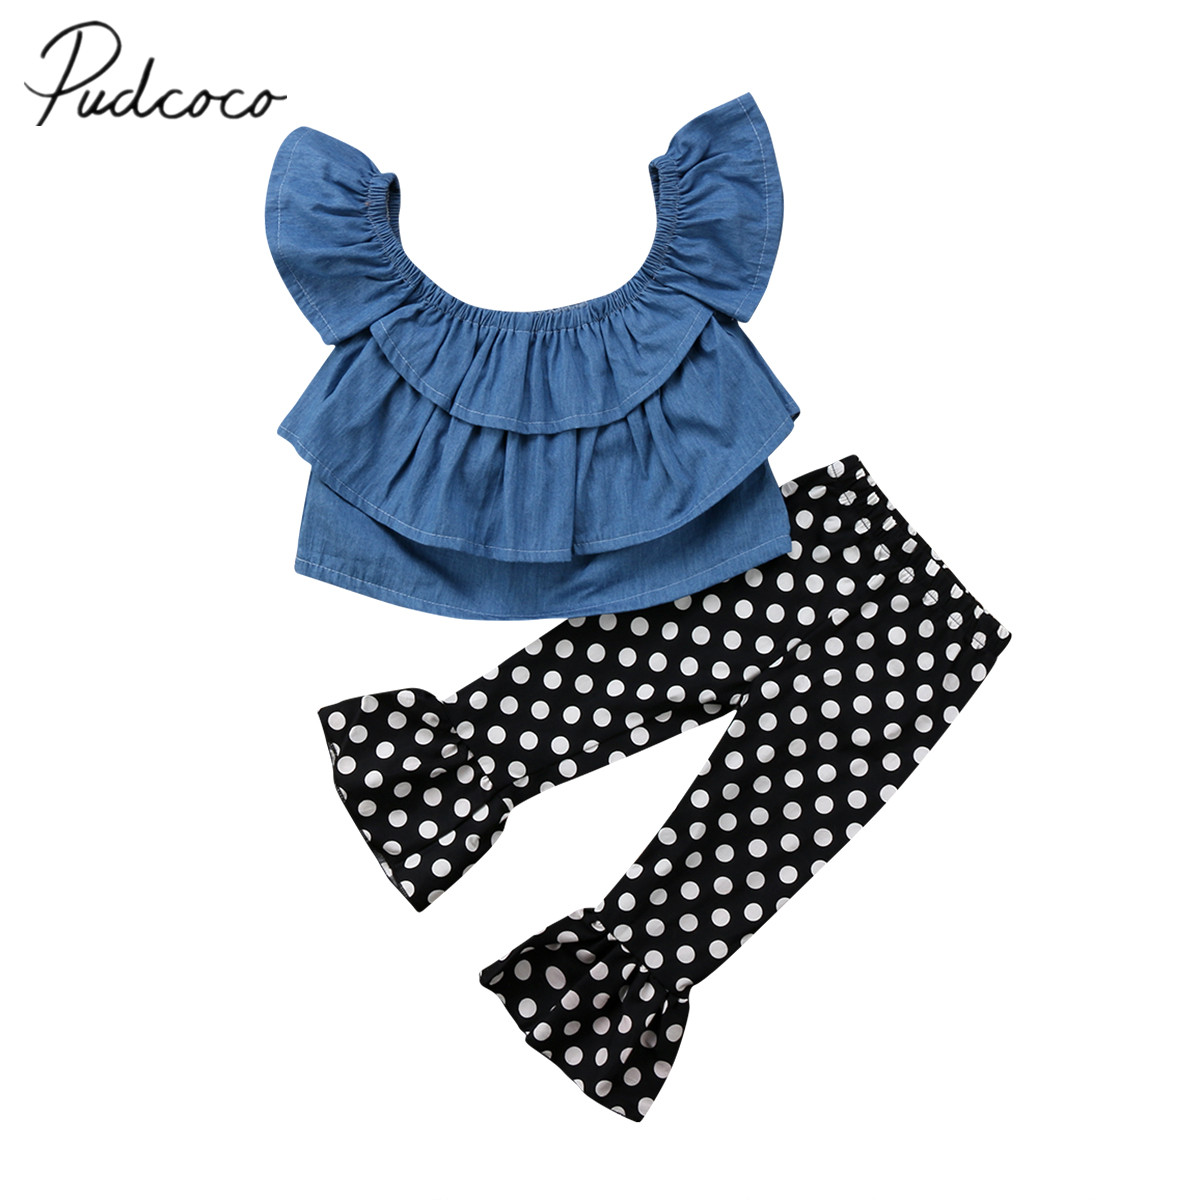 2018 Brand New Toddler Infant Child Kid Baby Girl Clothes Top Off shoulder Ruffled Shirt Flare Pants 2Pcs Set Summer Outfit 1-4T summer infant baby girl flower crop top shorties pants outfit sunsuit